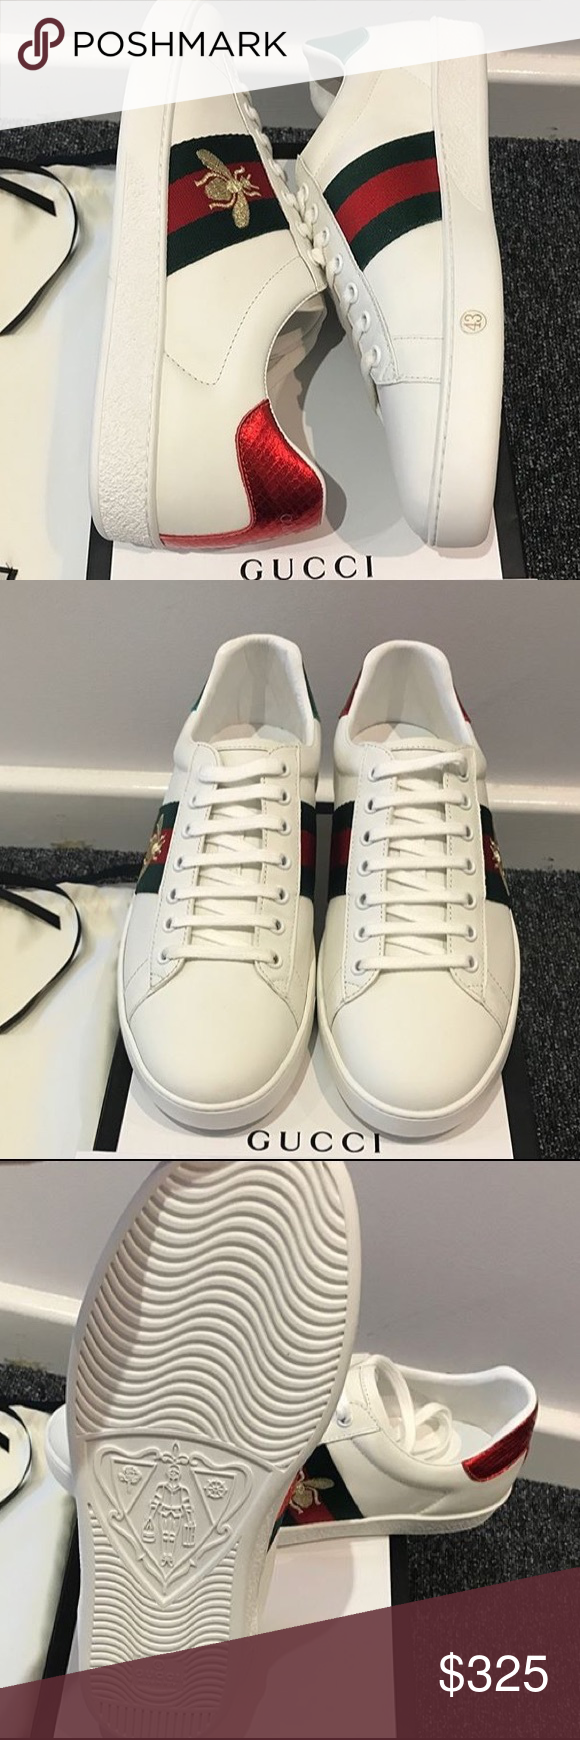 c748dd0060018 Gucci Ace bee Sneakers Original. Come with original box and dust bags Gucci  Shoes Sneakers